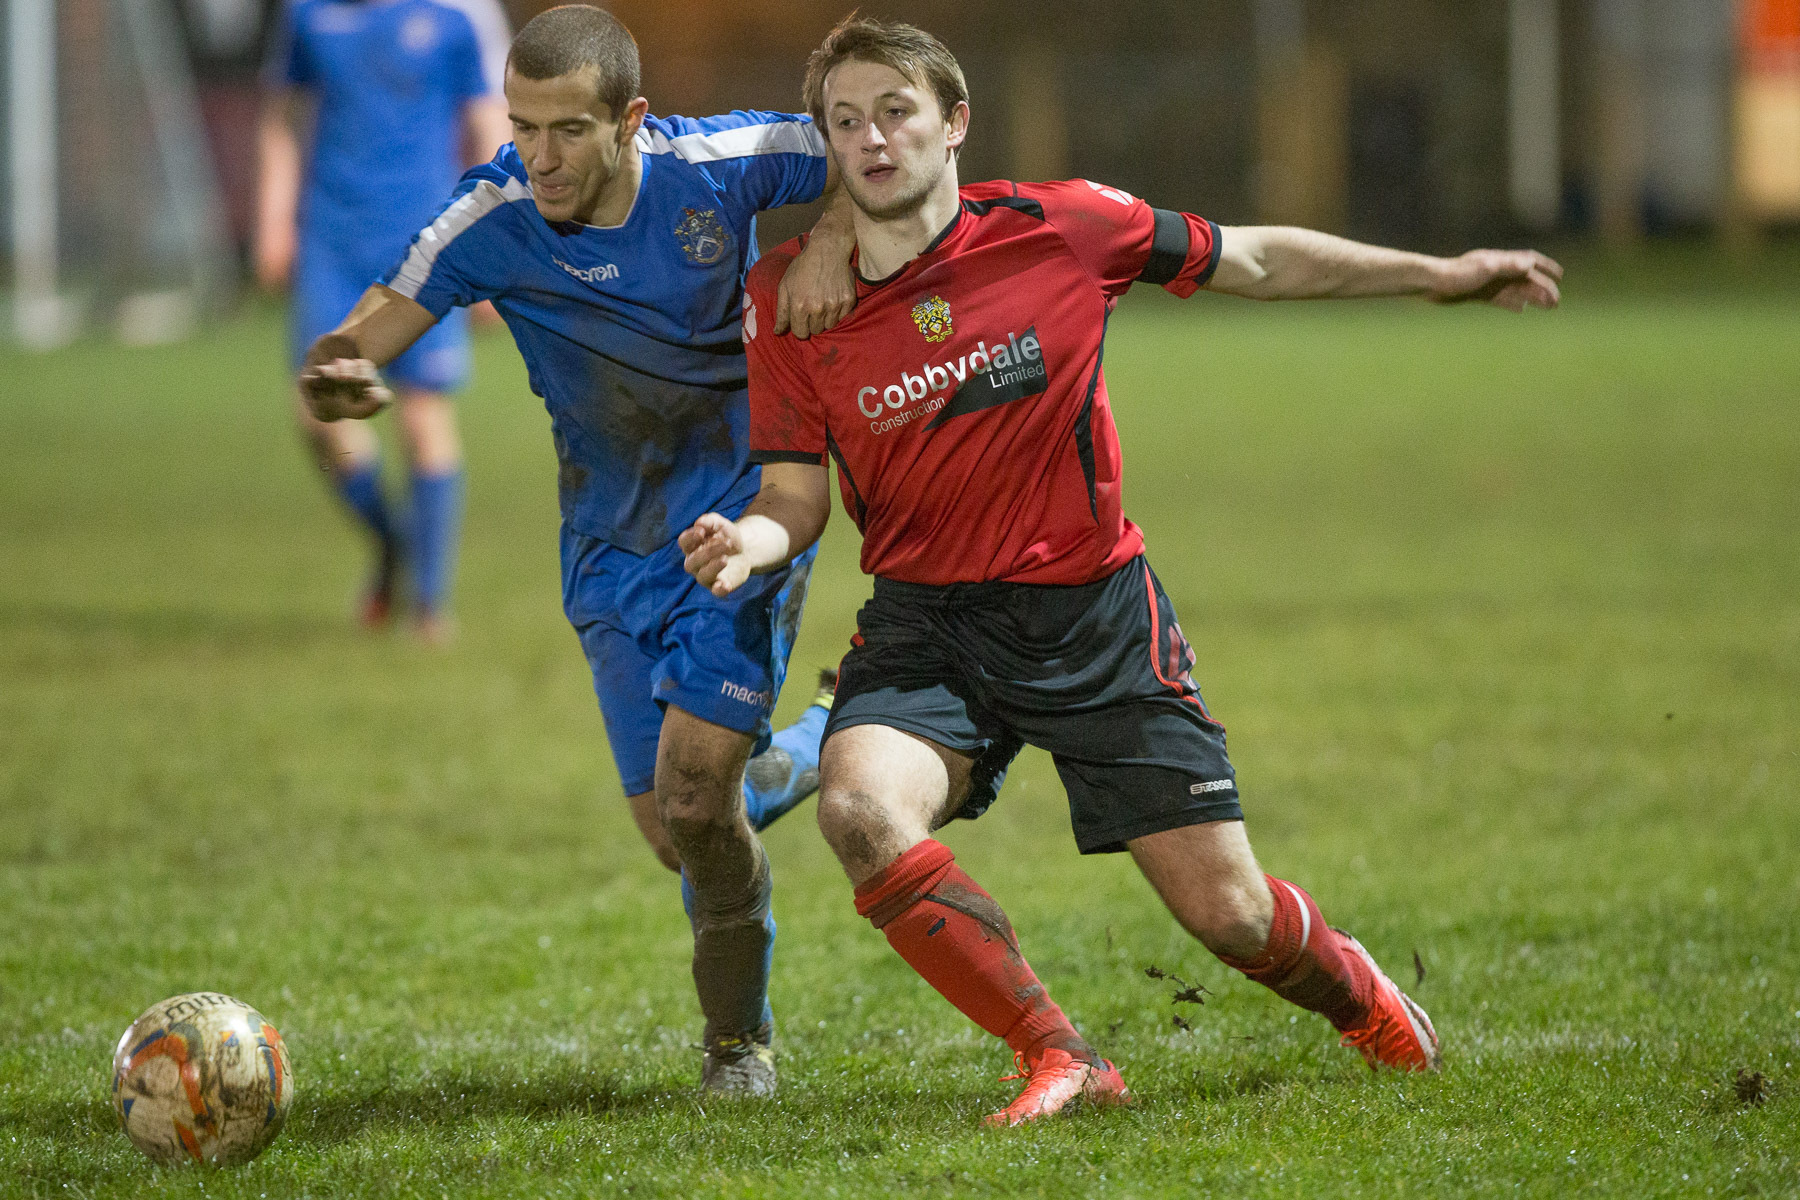 Chris Wademan opened the scoring for Silsden but they could not protect the lead